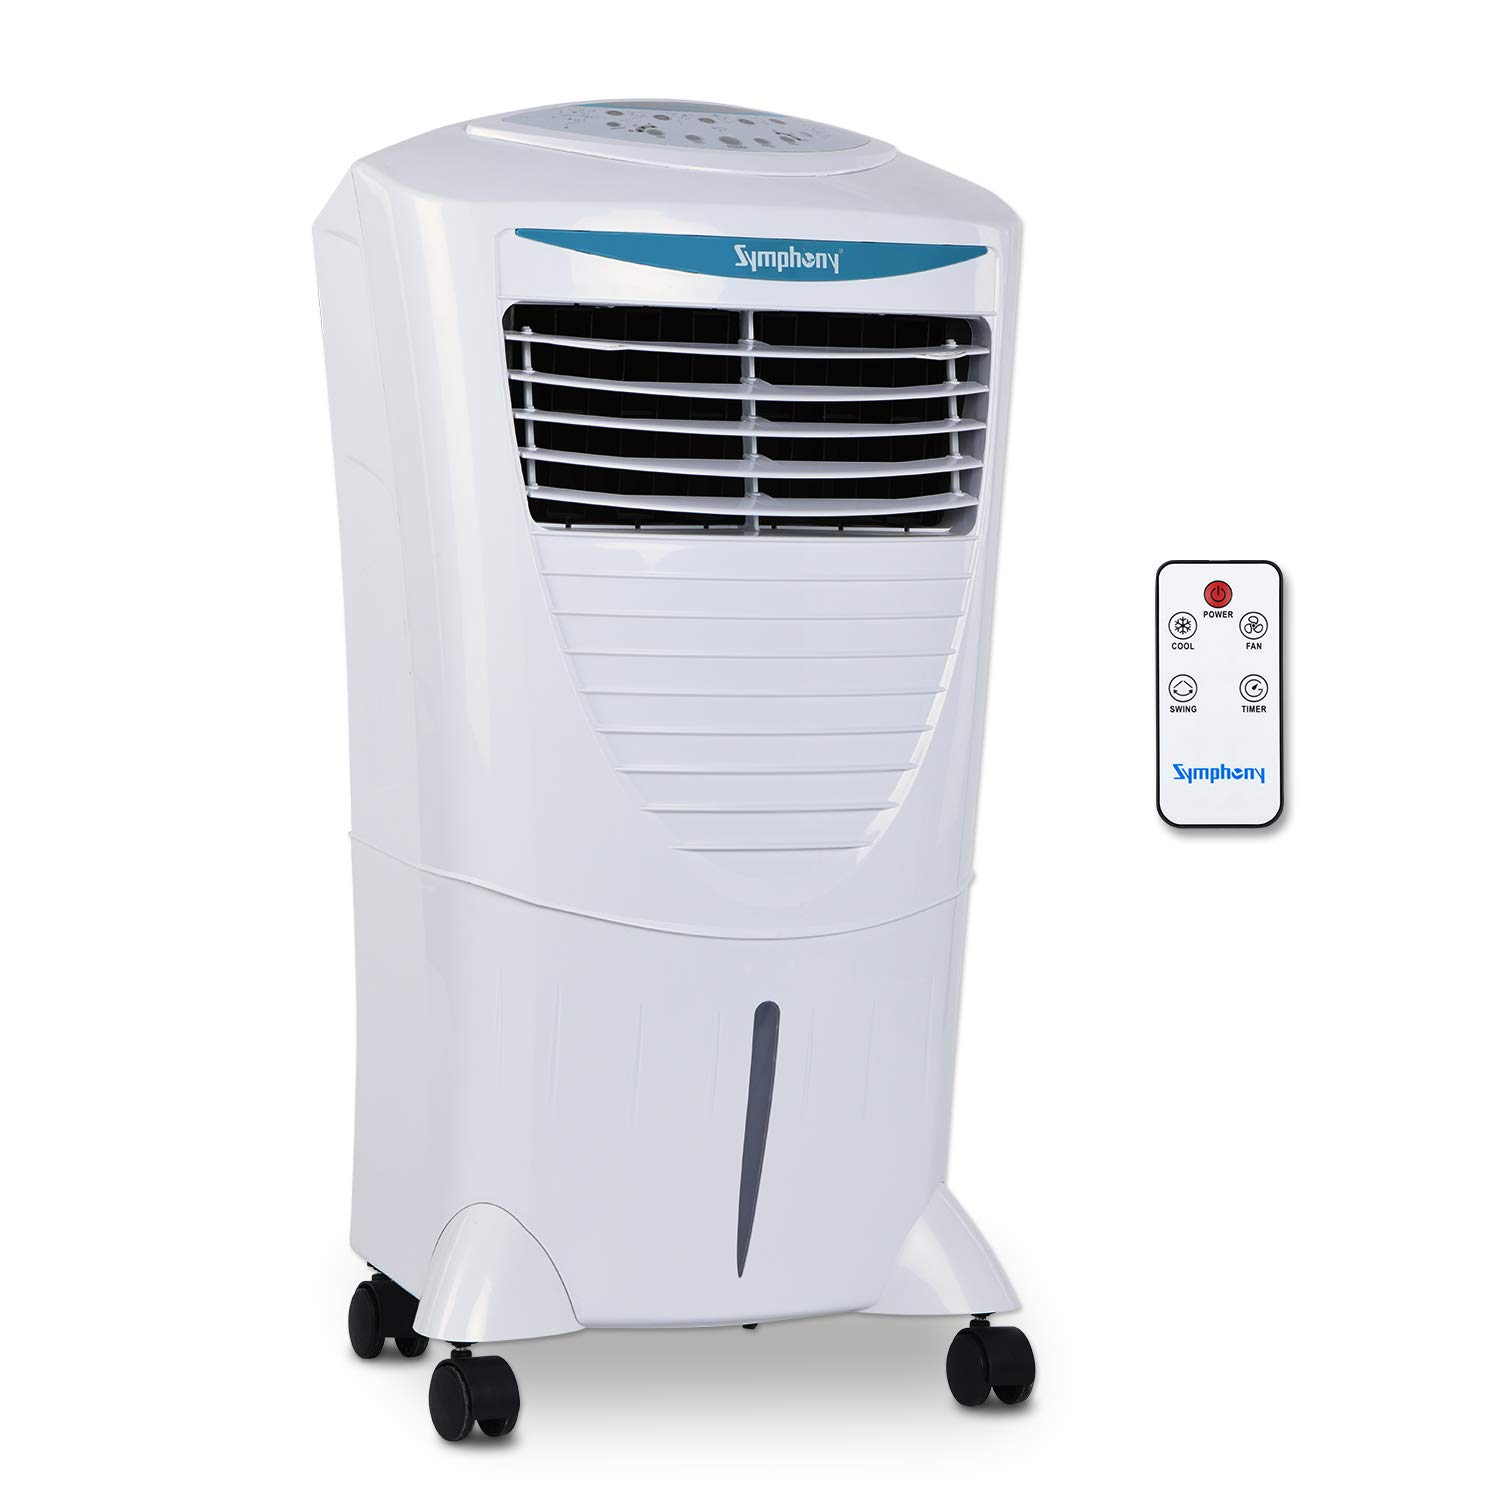 Symphony Hi Cool I Modern Personal Room Air Cooler 31-litres, With Remote, Honeycomb Pad, Multi-Stage Air Purification & Low Power Consumption (White)